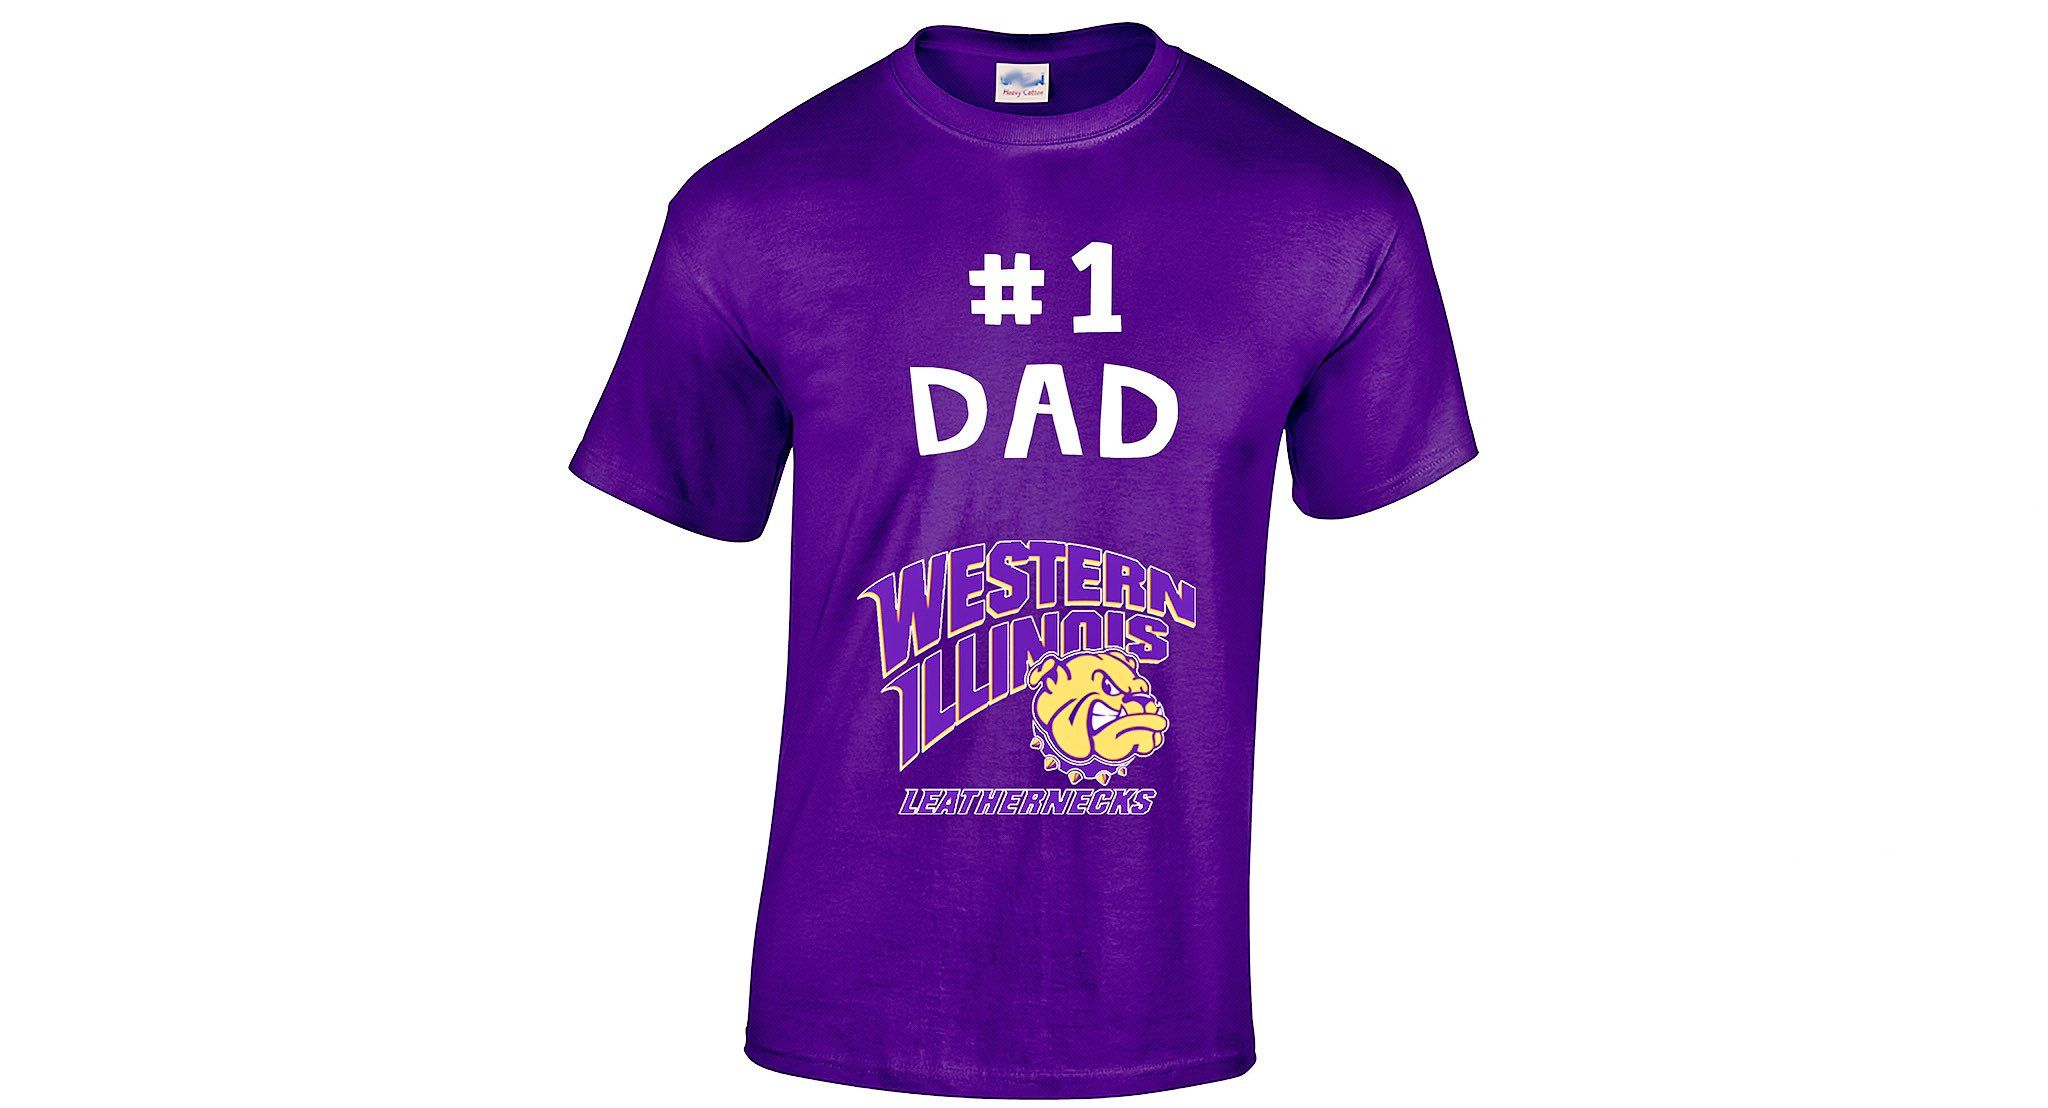 buy online f1027 540ae 1 Dad T-shirt - Western Illinois University - Purple & Gold ...